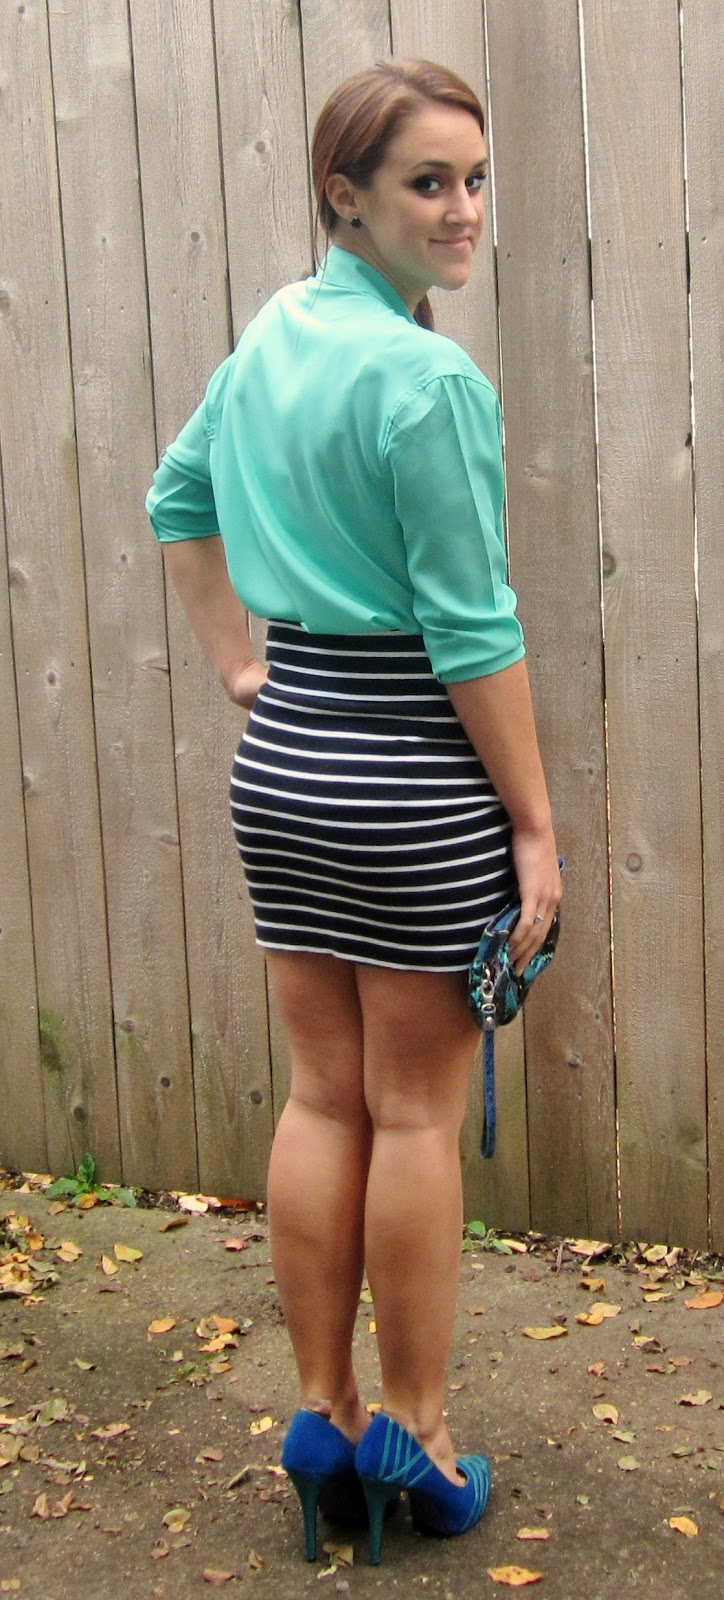 love, elizabethany: pinspired outfits: a skirt kinda weekend